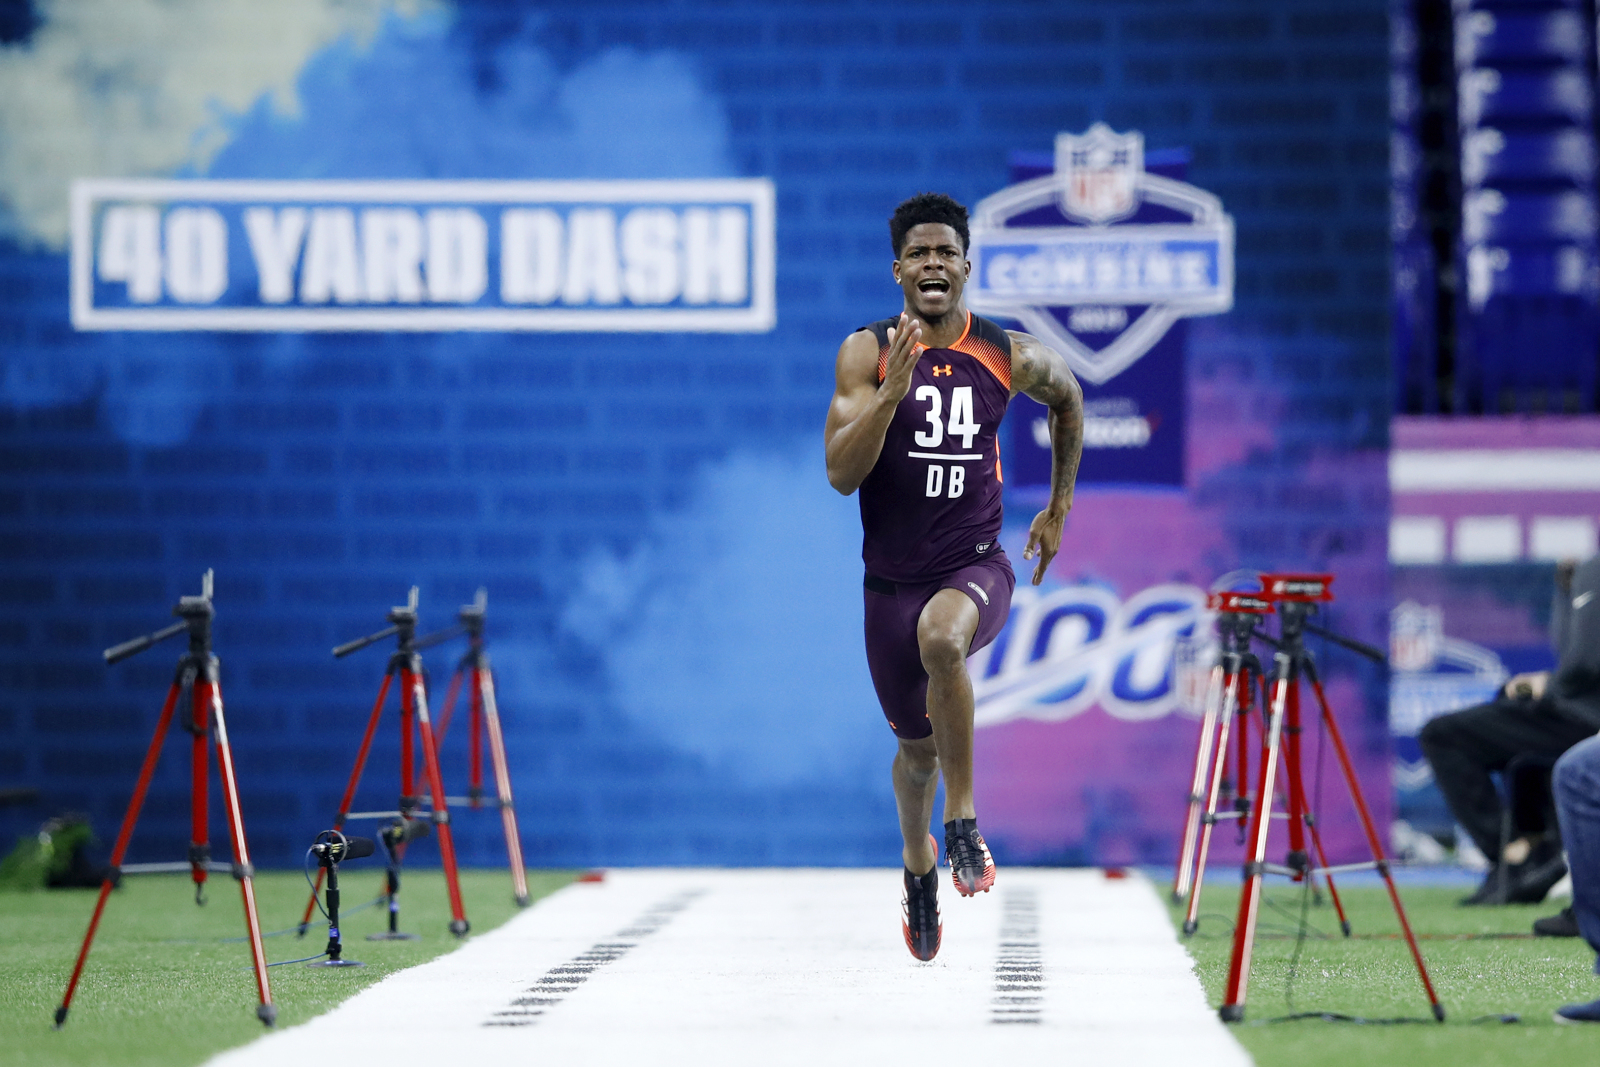 2020 NFL Draft: 5 names Browns fans to know at NFL Scouting Combine